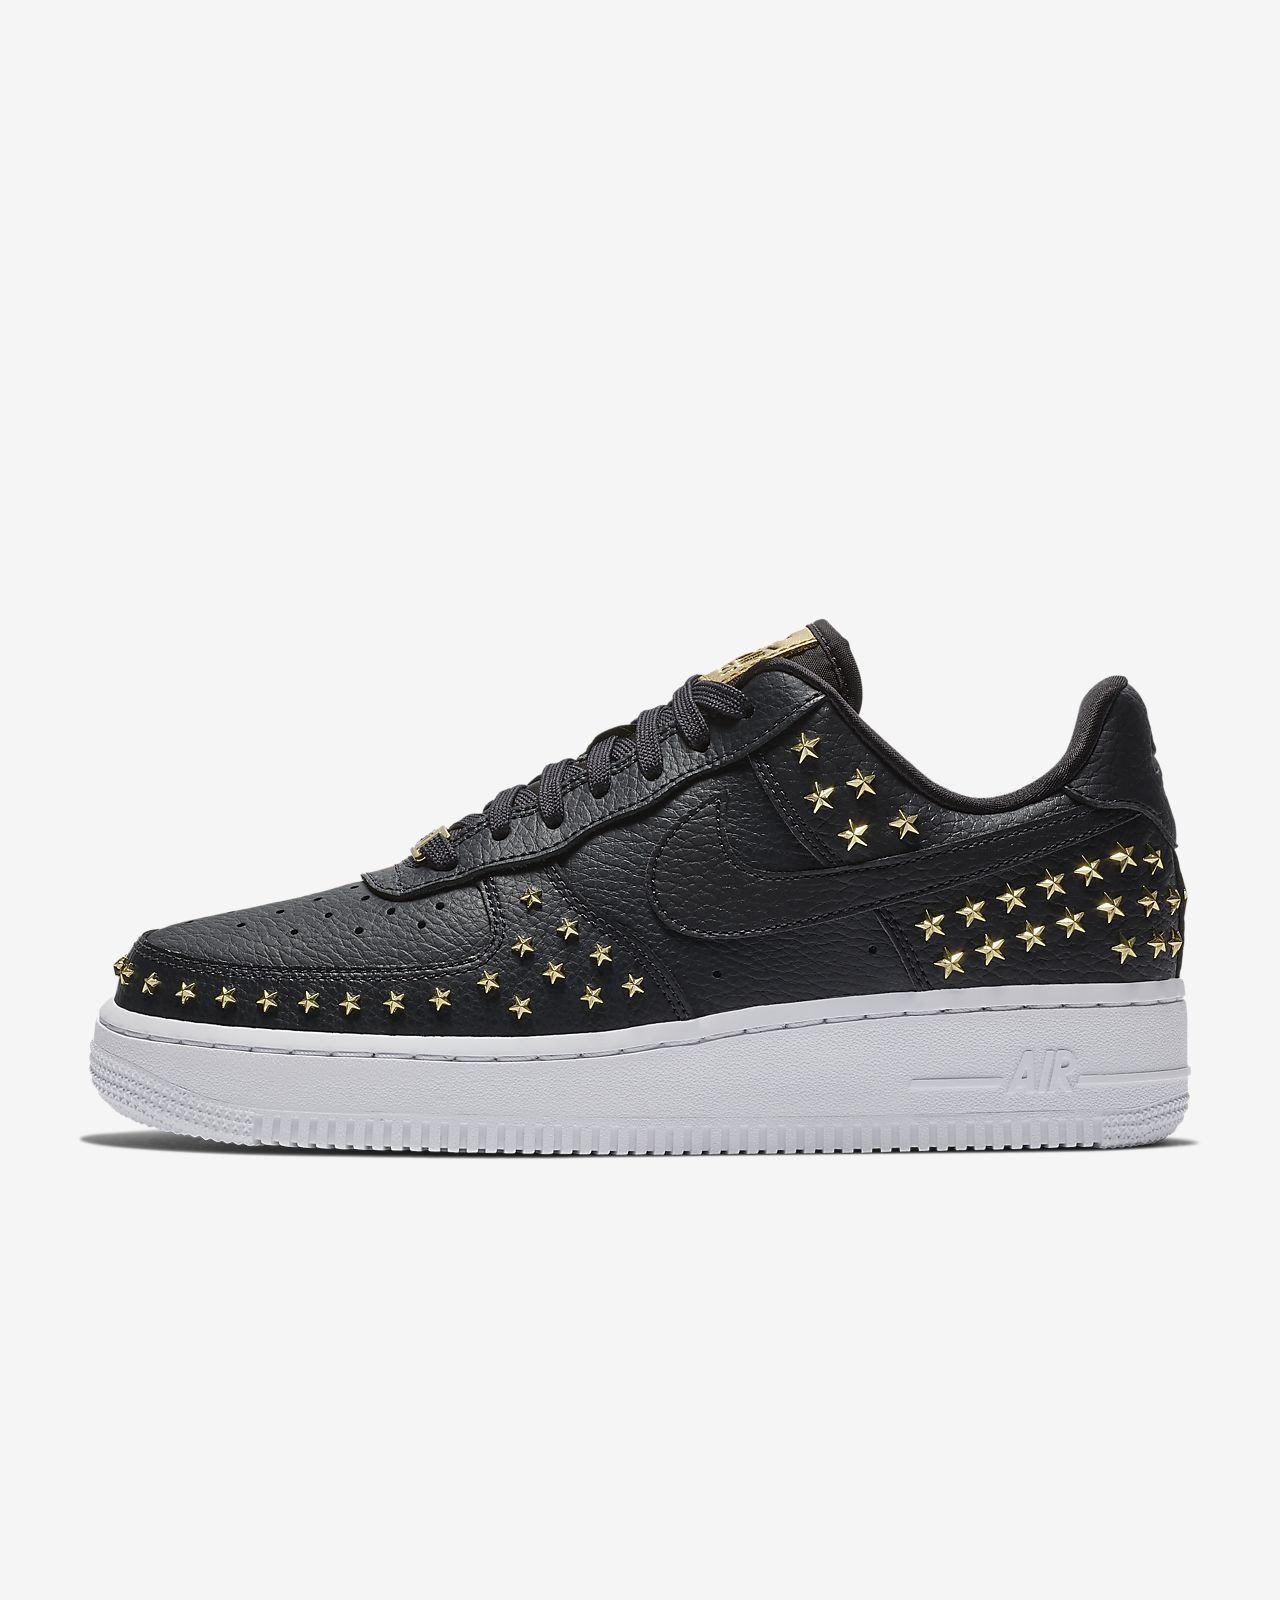 check out ed317 a3544 Low Resolution Nike Air Force 1  07 XX Studded Damenschuh Nike Air Force 1   07 XX Studded Damenschuh